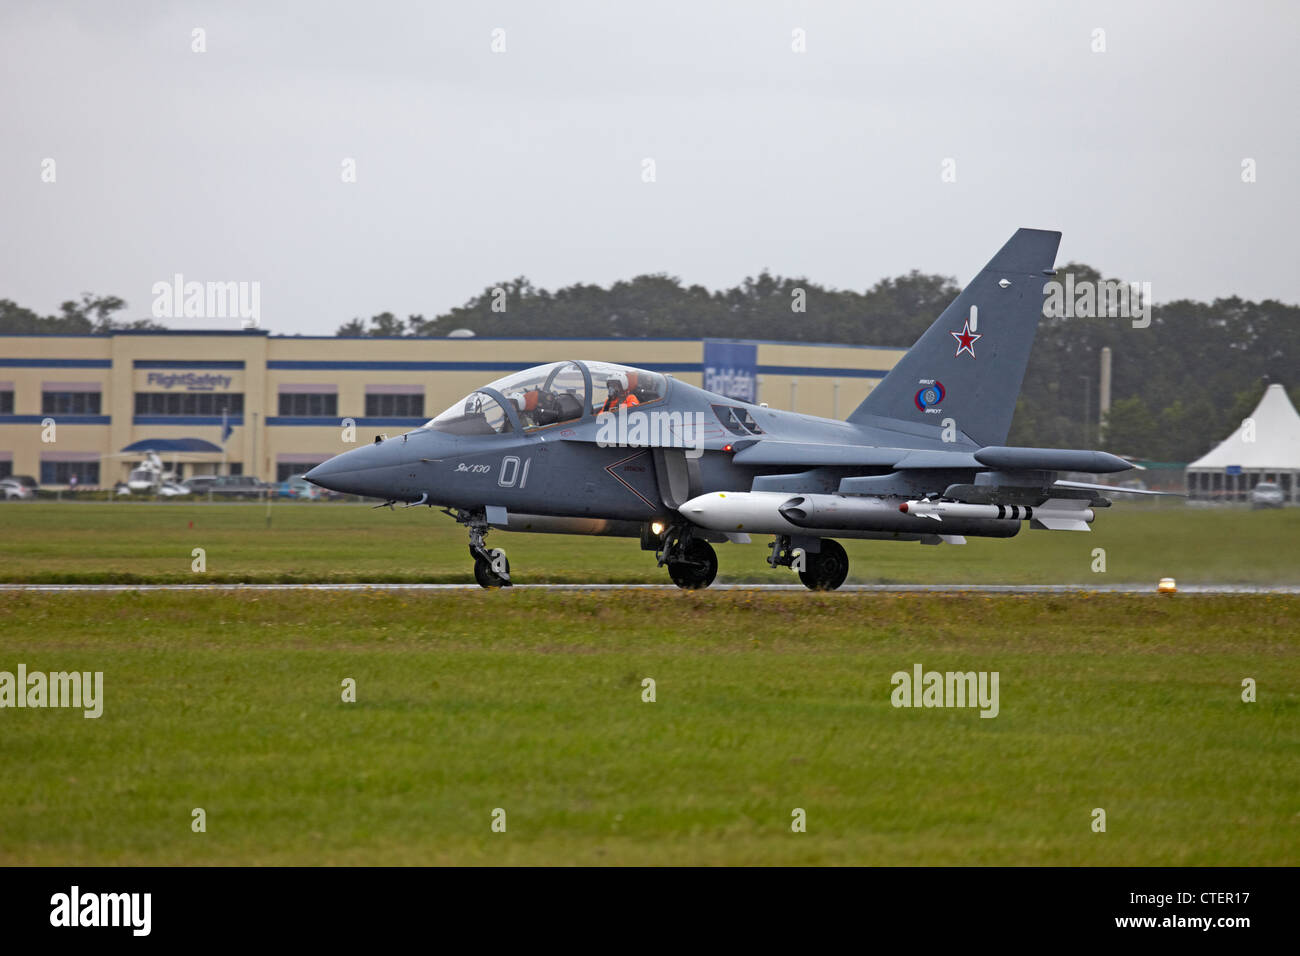 Farnborough International Airshow Irkut Yakovlev Yak 130 taking off - Stock Image